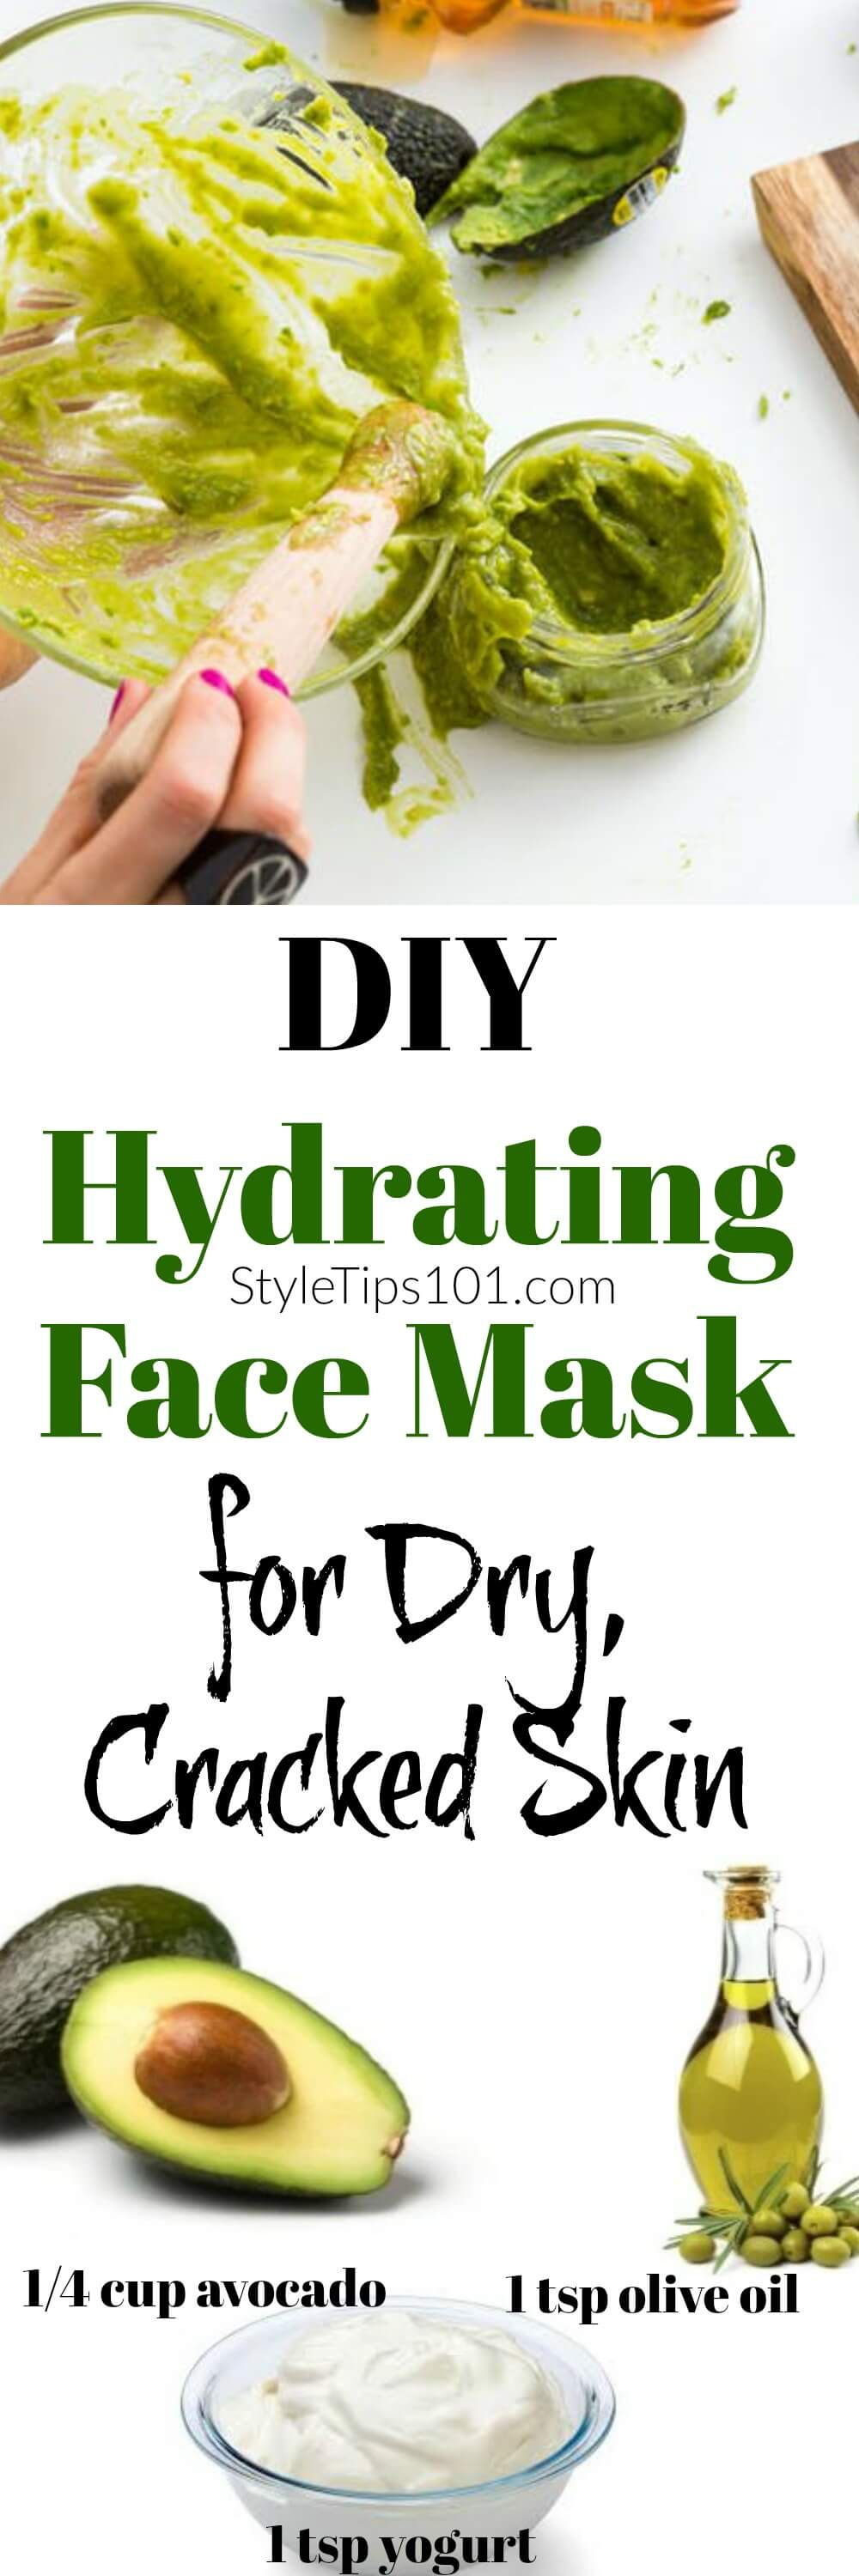 For those of you who suffer from dry skin, this DIY hydrating face mask with avocado & yogurt will hydrate and moisturize even the driest of skin.